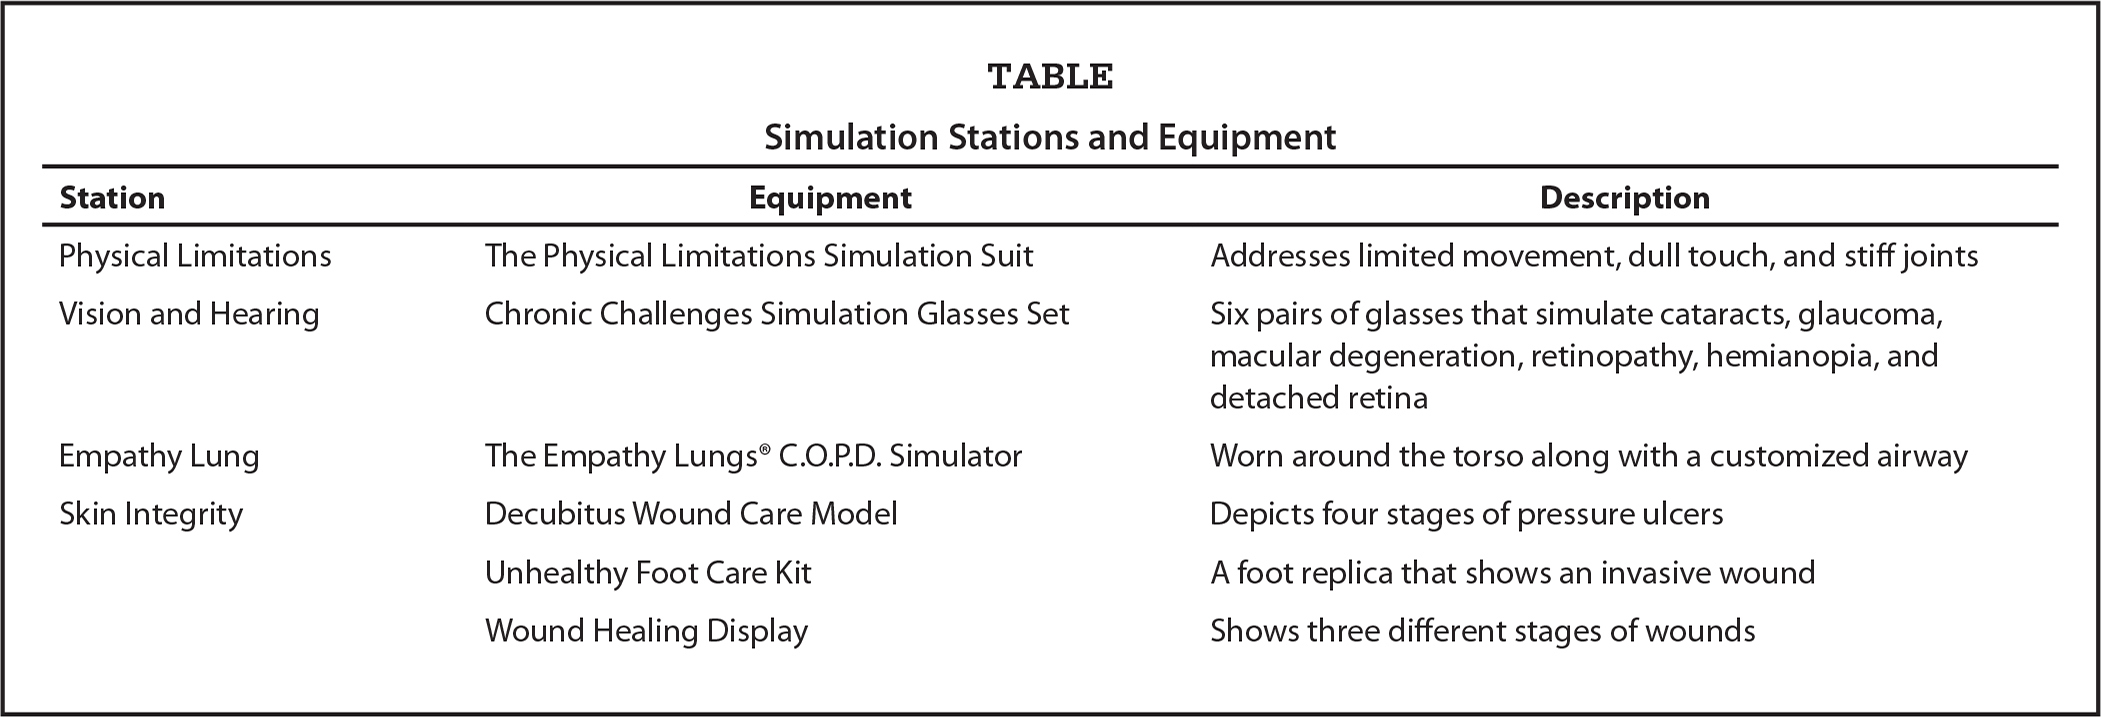 Simulation Stations and Equipment